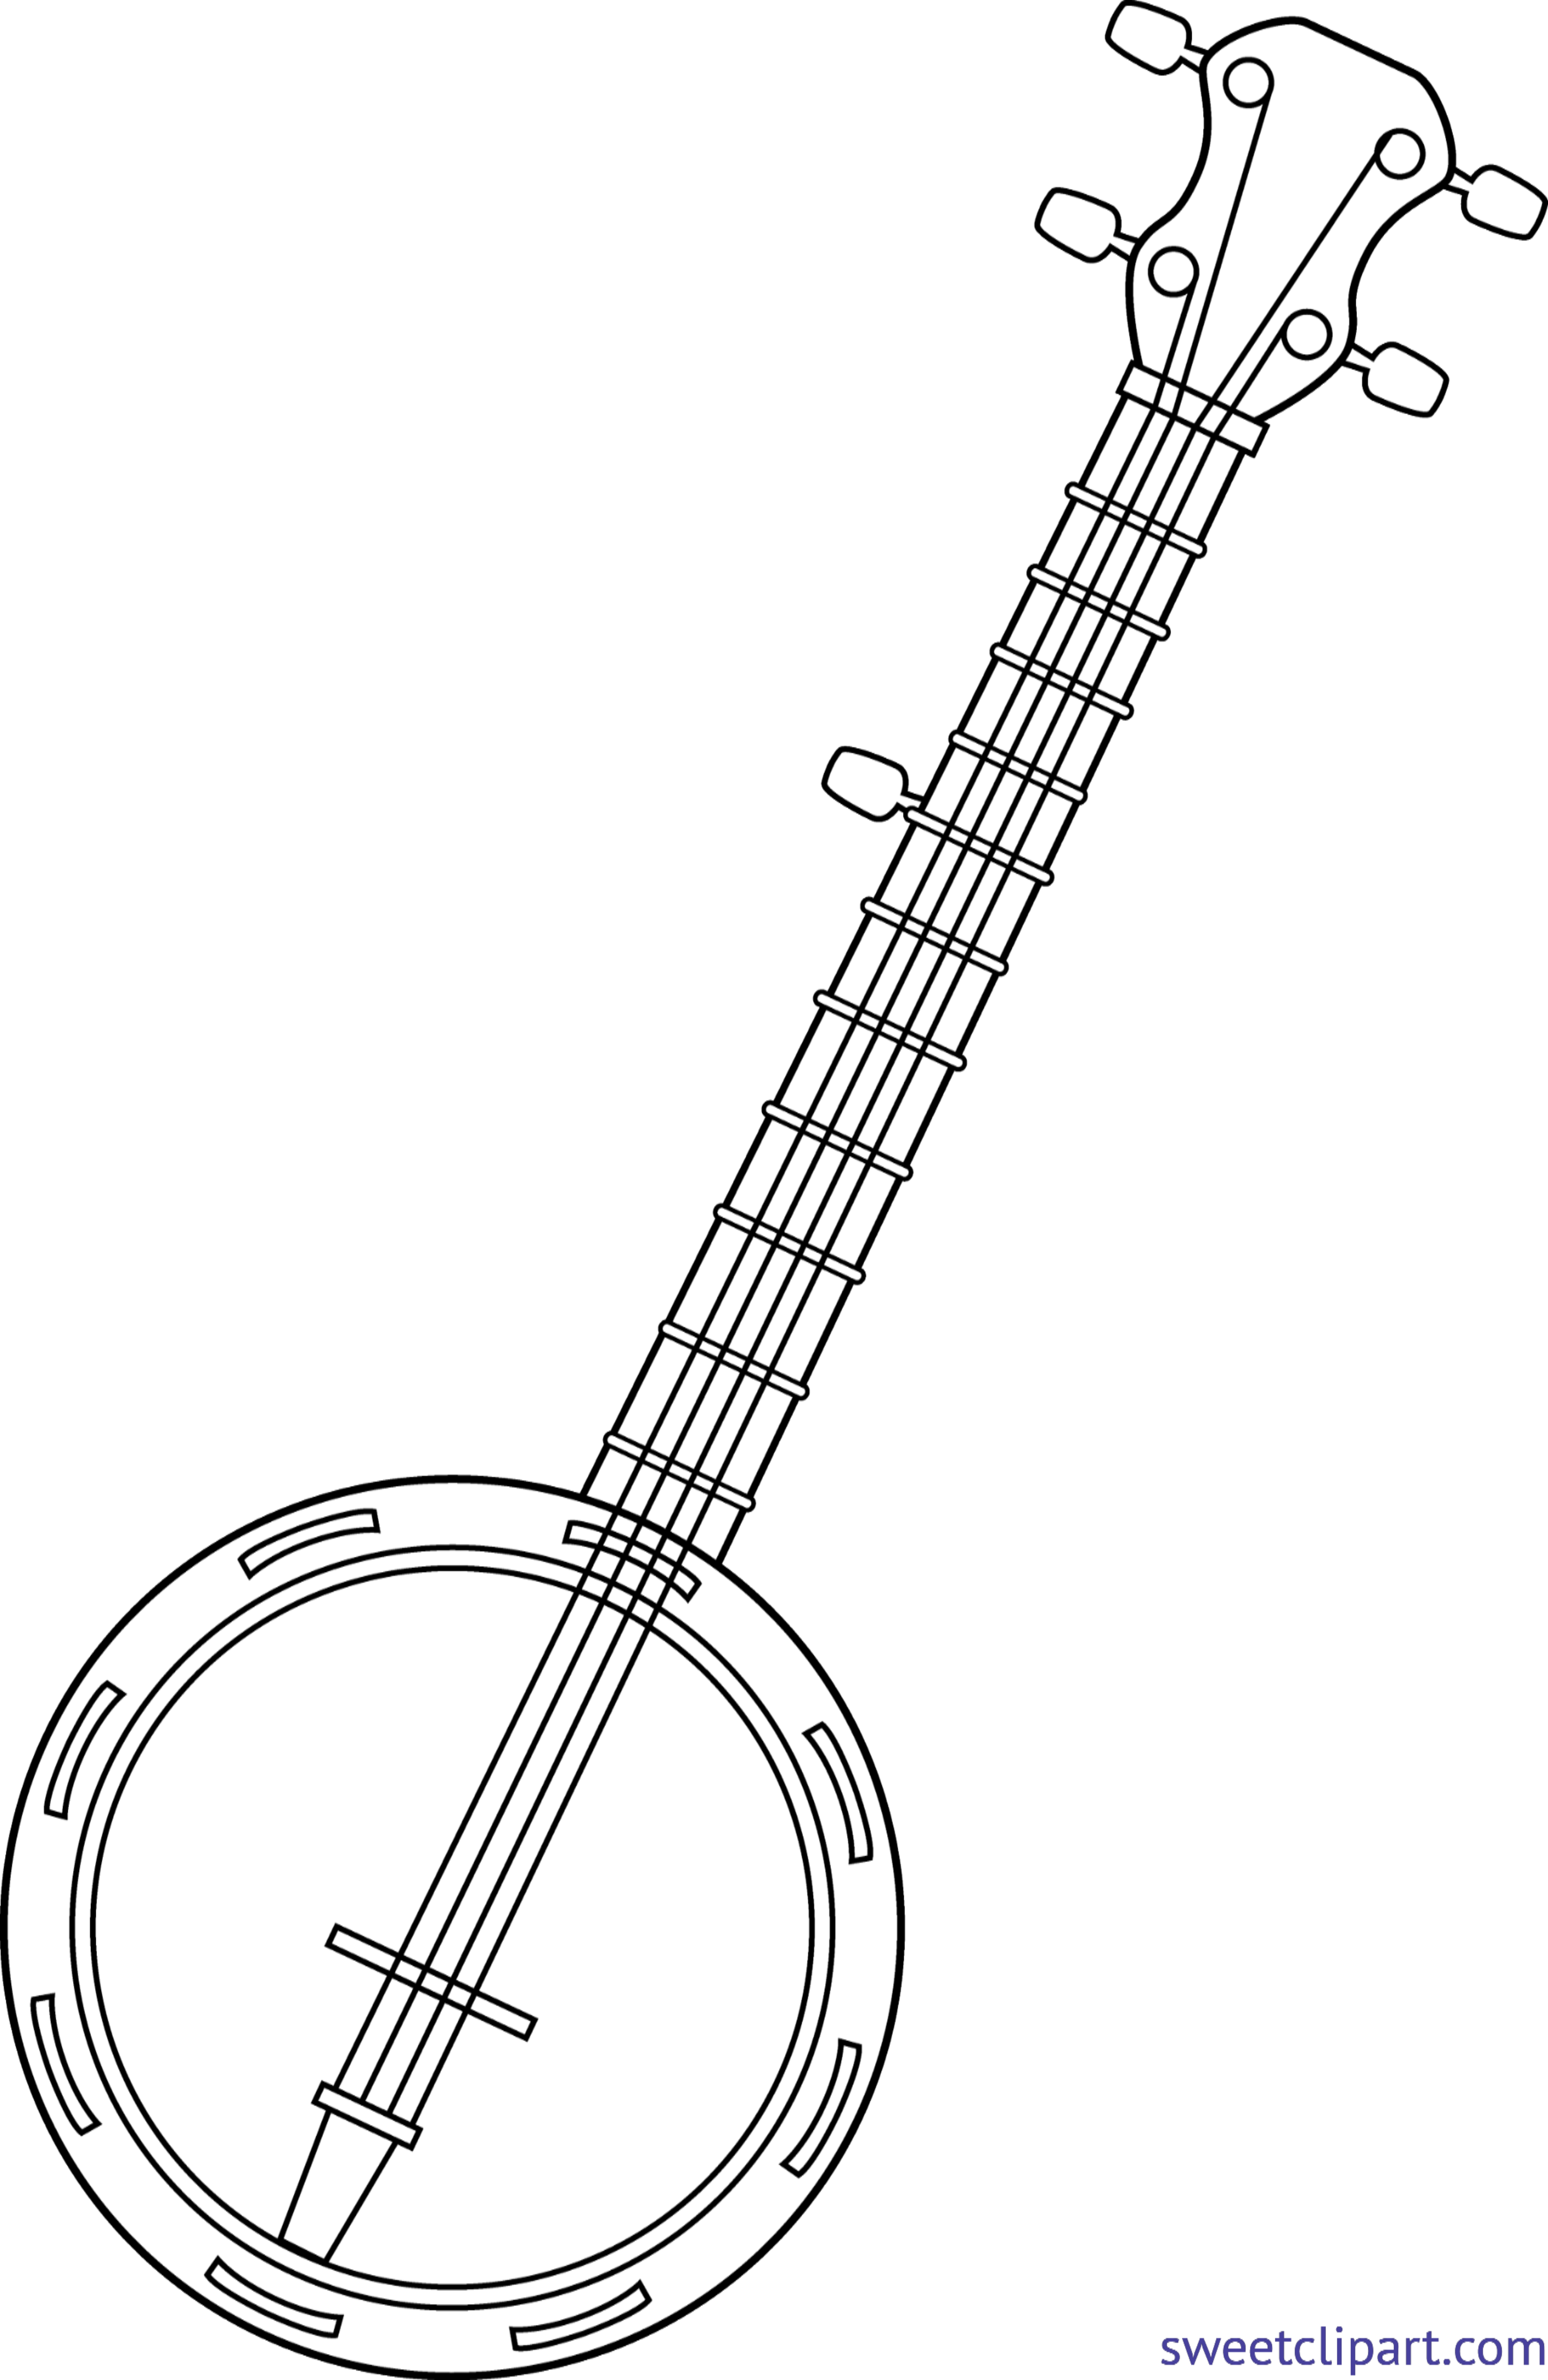 Lineart clip art sweet. Banjo clipart black and white